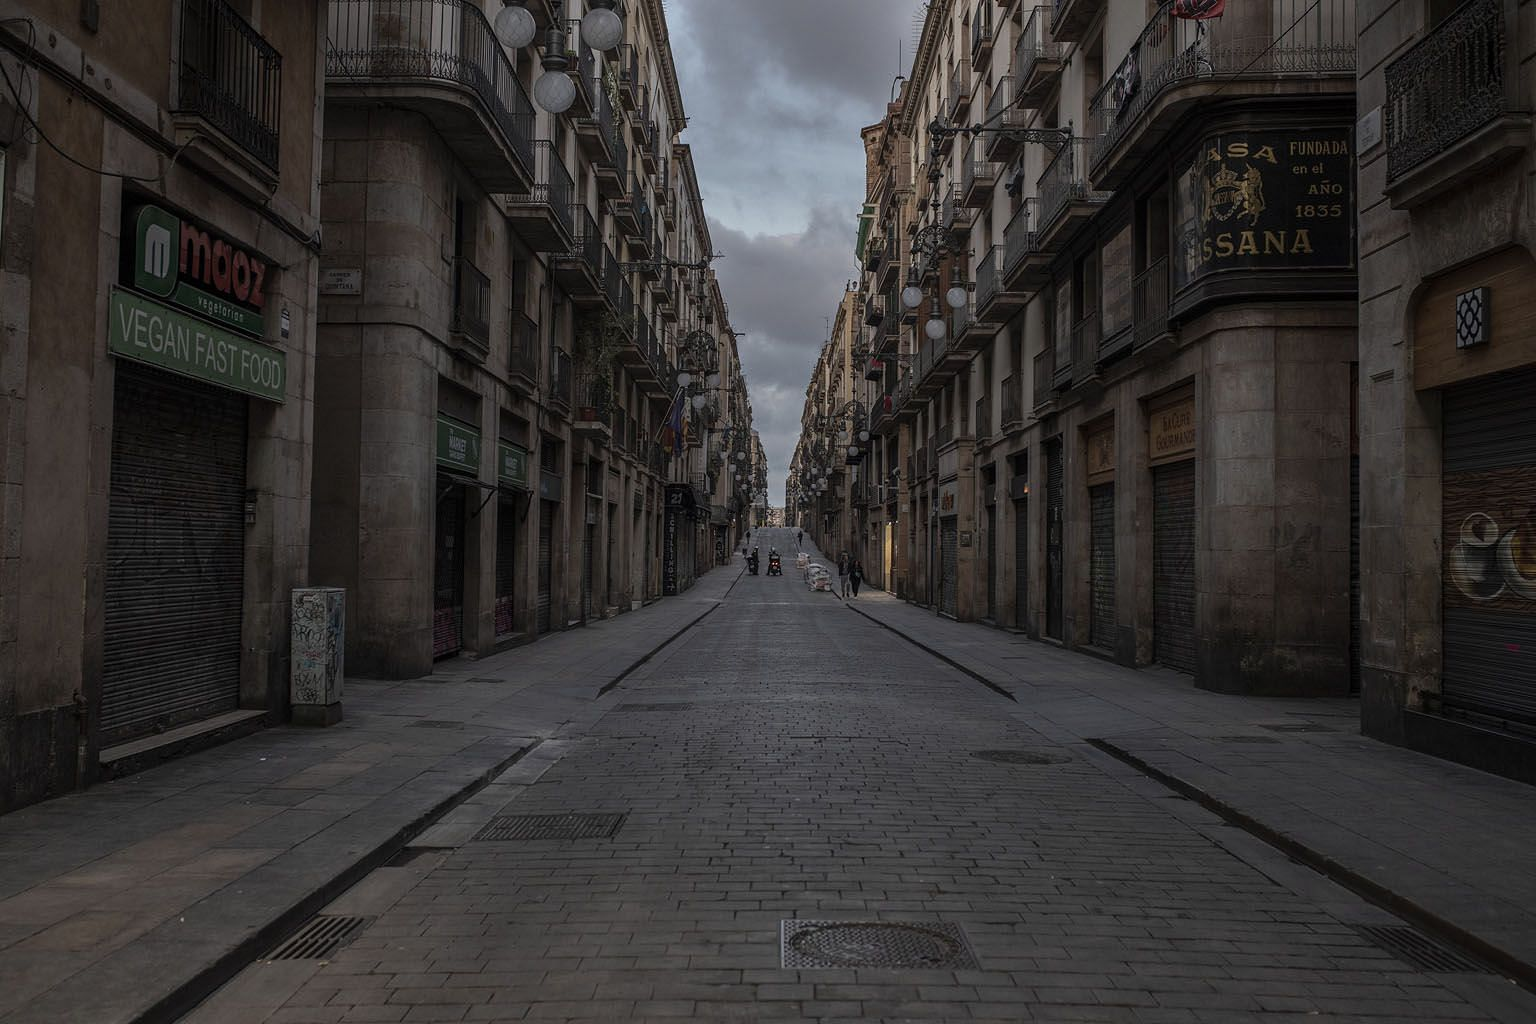 An empty street amid the coronavirus outbreak in Barcelona, Spain. Covid-19 has thrust into the limelight the responsibility that governments have for the livelihood and well-being of their citizens, says the writer. Besides business bailouts and sub